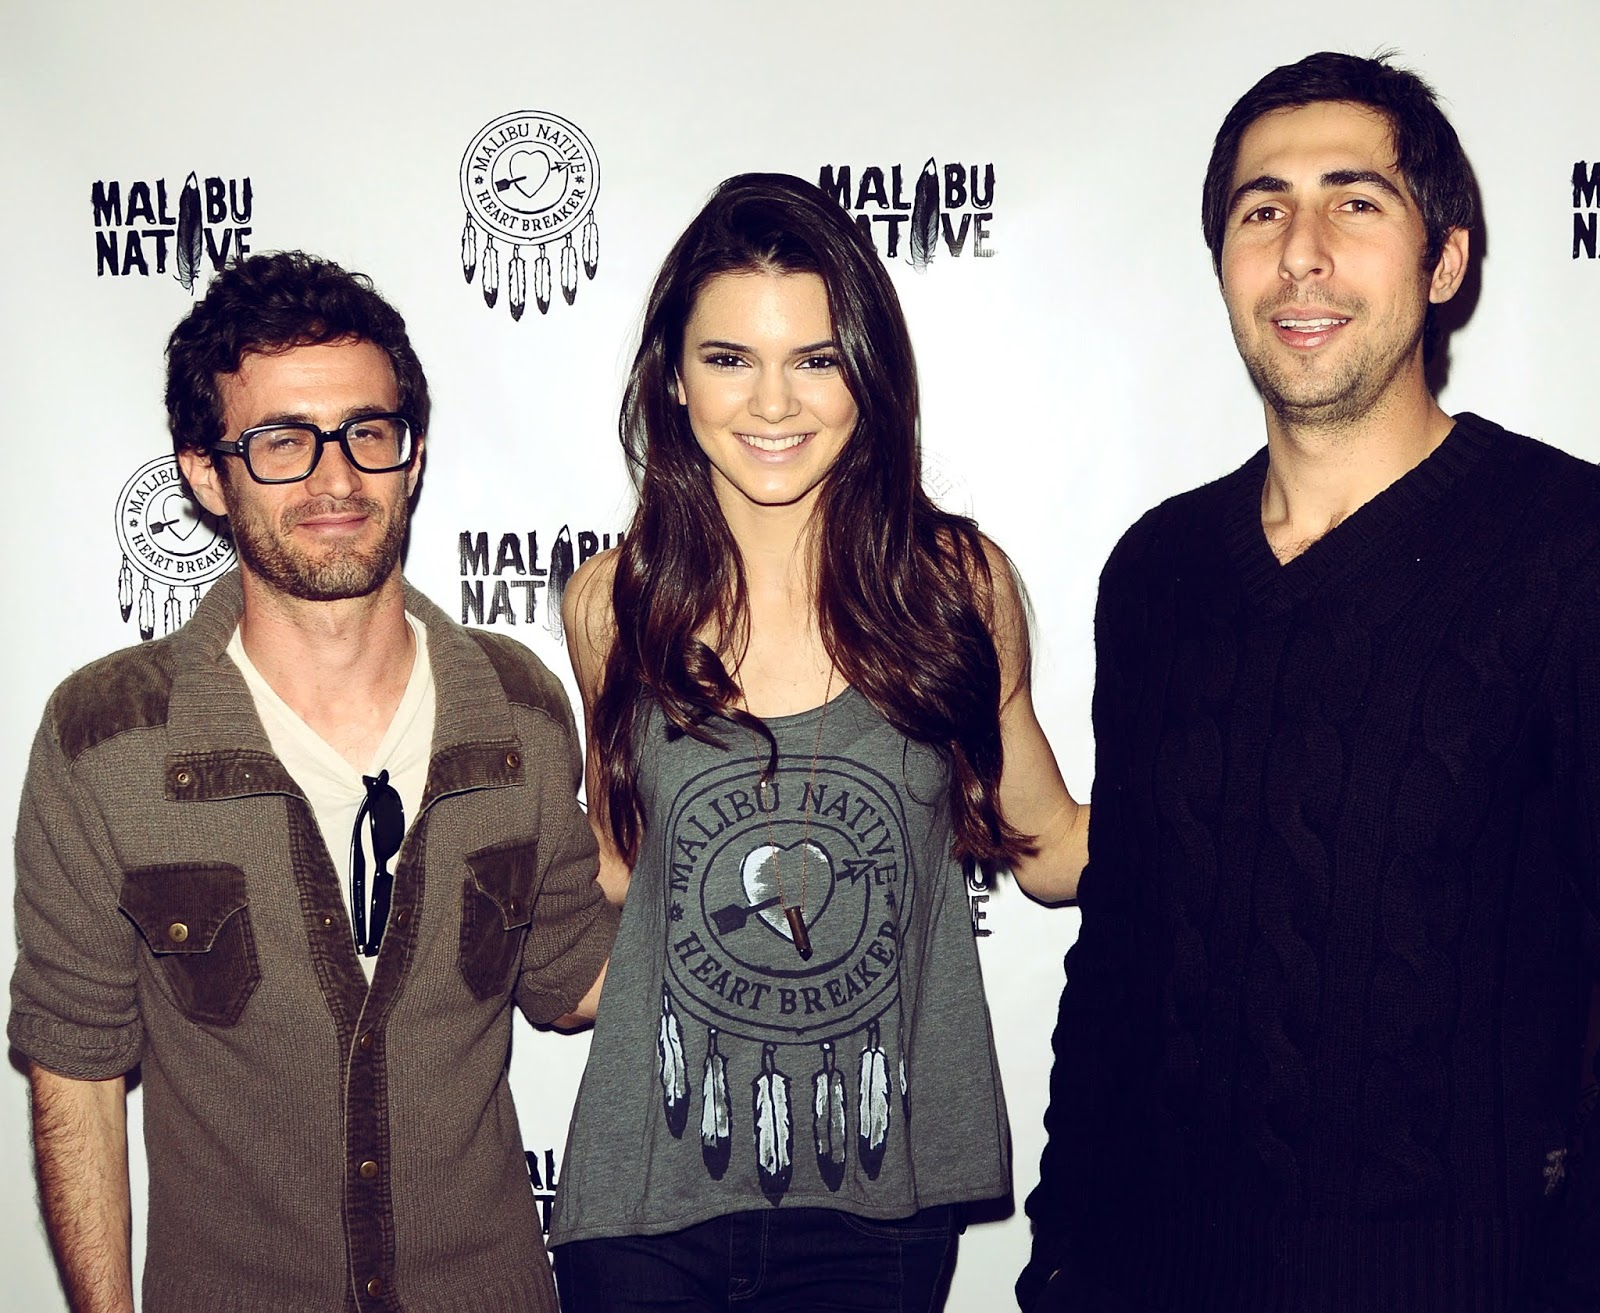 03 - Celebrates Launch Of Malibu Native Surf Fashion Brand At Pac Sun in Los Angeles in February 5, 2011